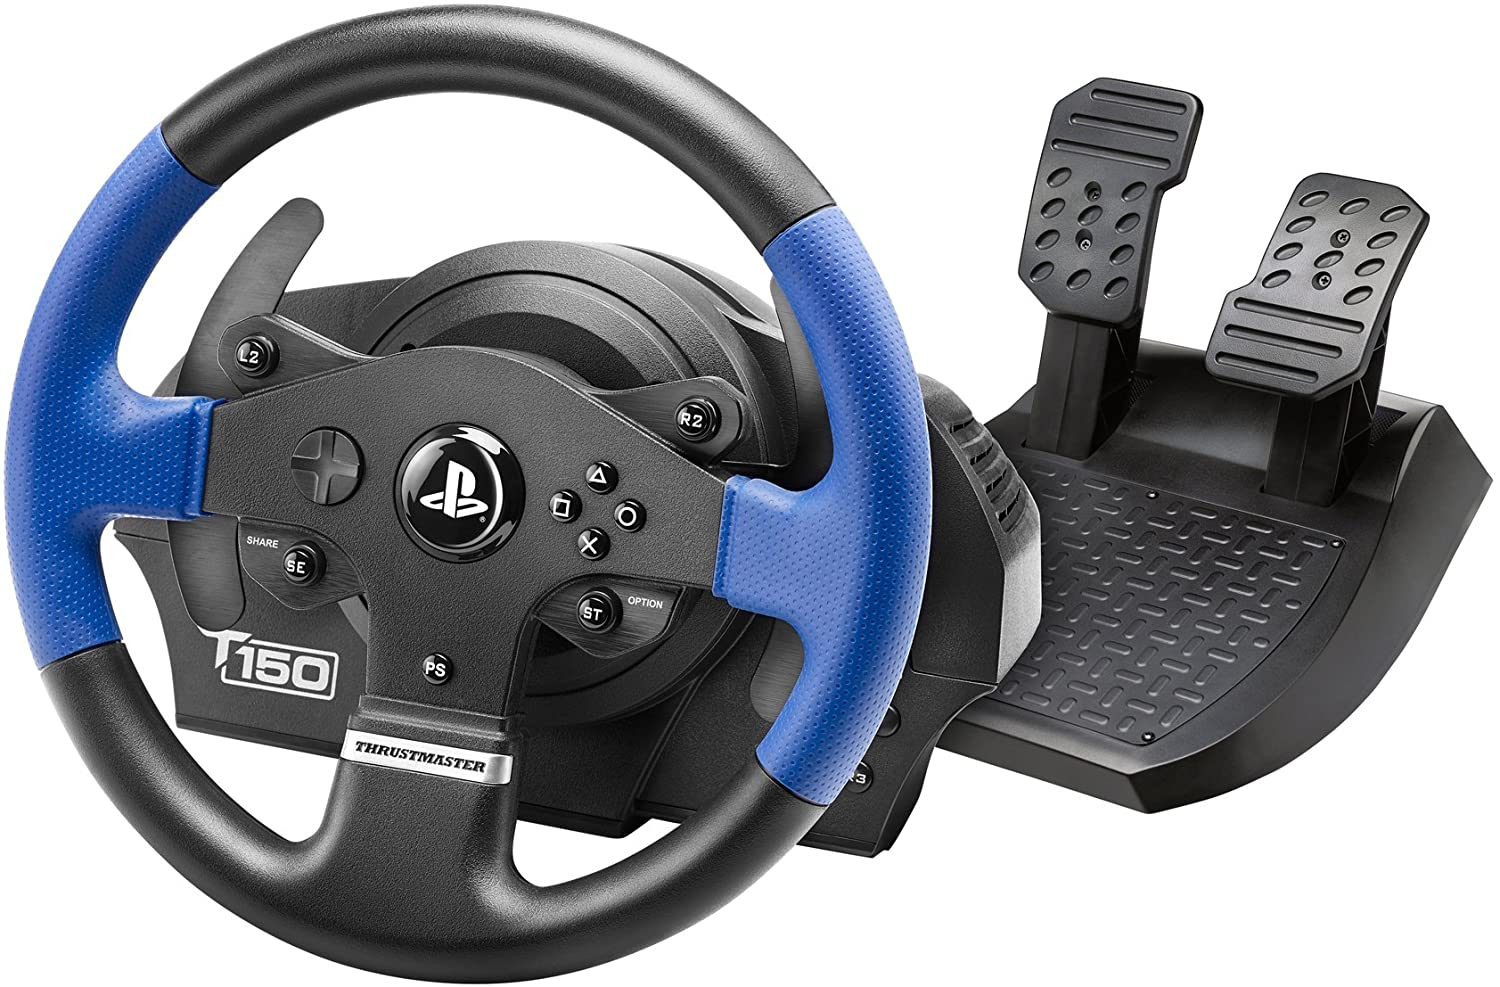 Thrustmaster's T150 and Pedals